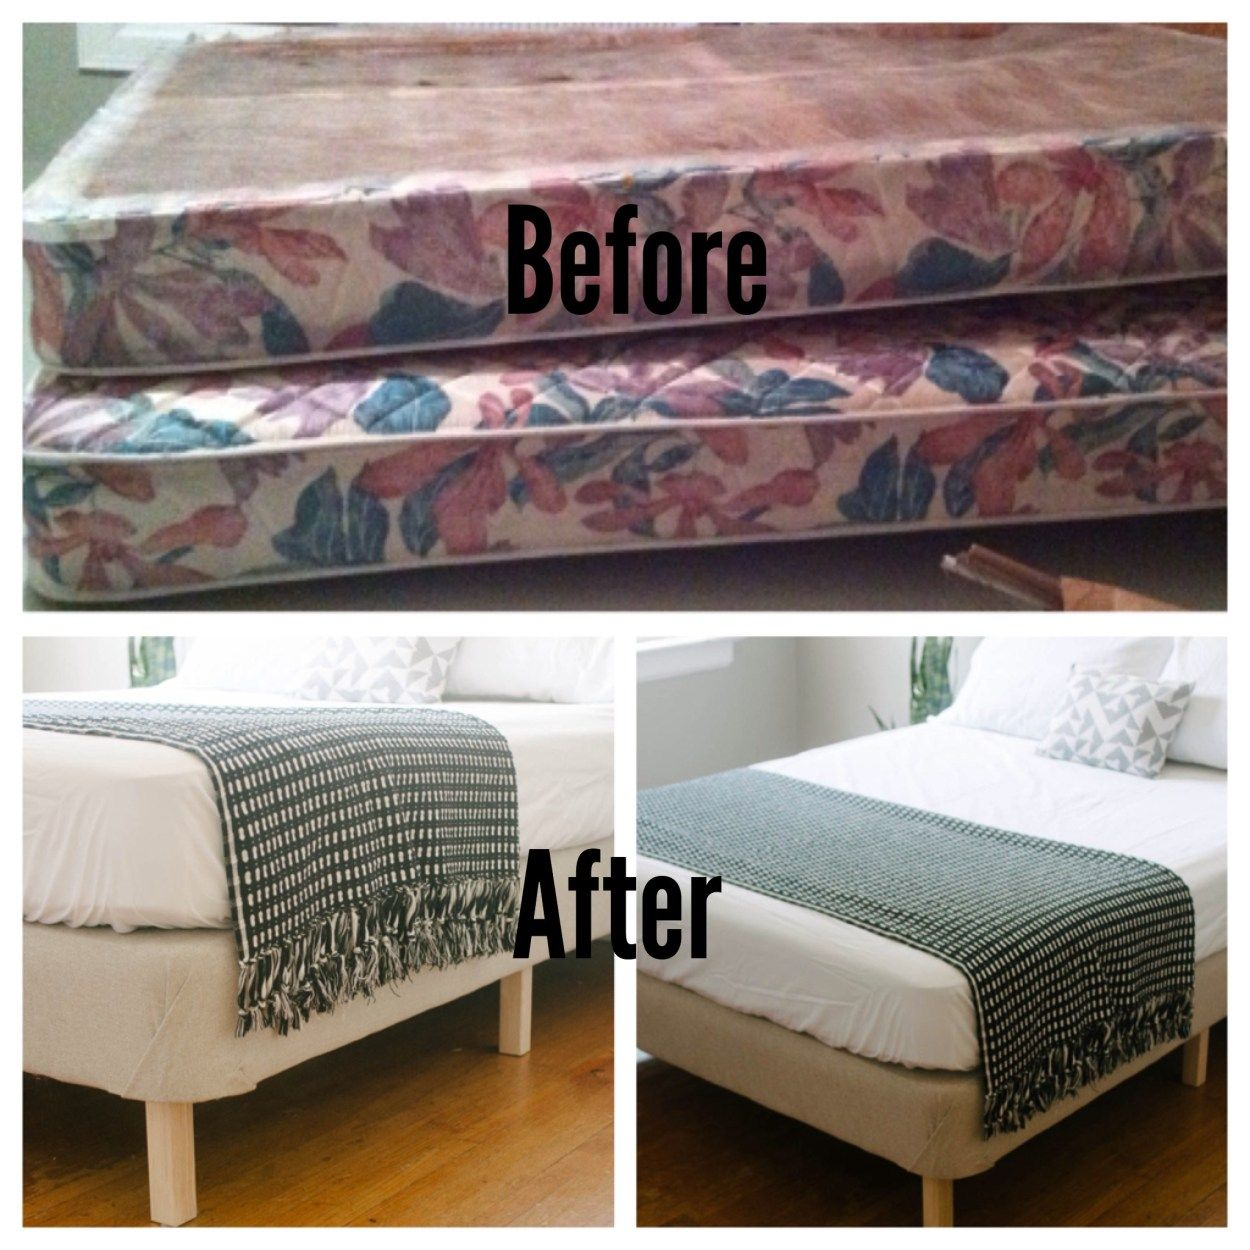 Before And After Bed Diy Modern Bed Diy Platform Bed Diy Bed Frame